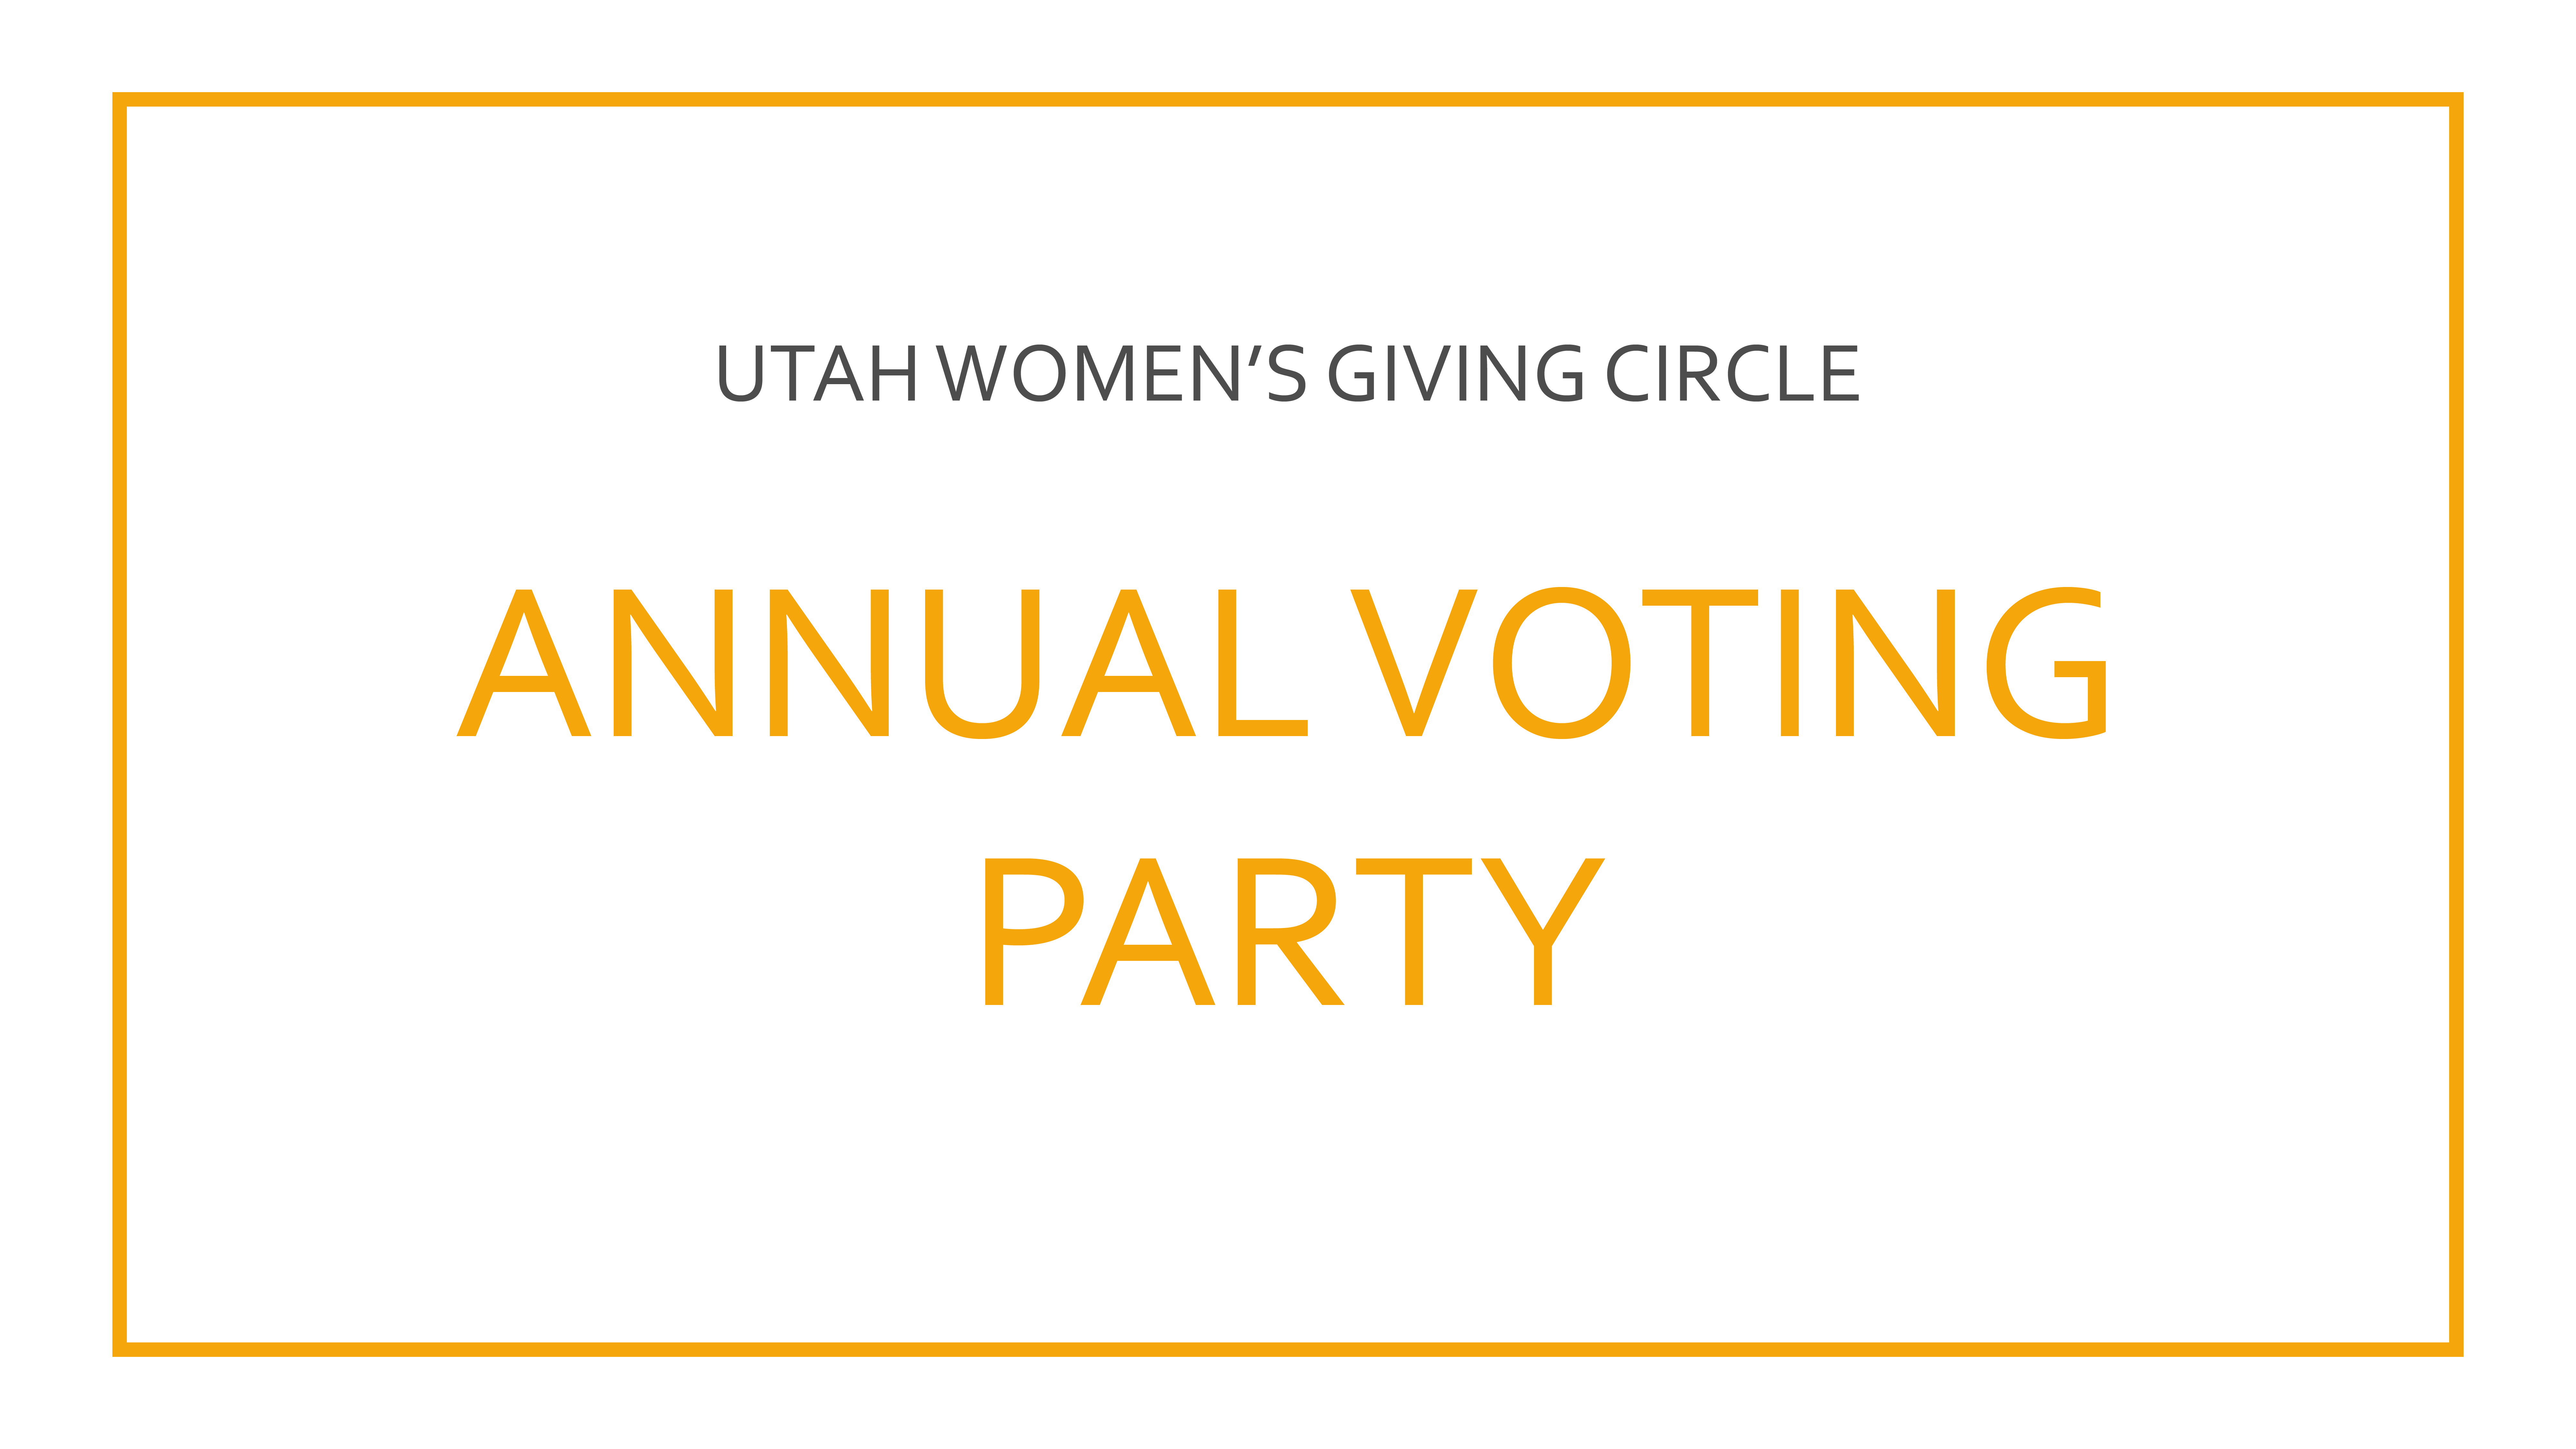 Utah Women's Giving Circle Annual Voting Party